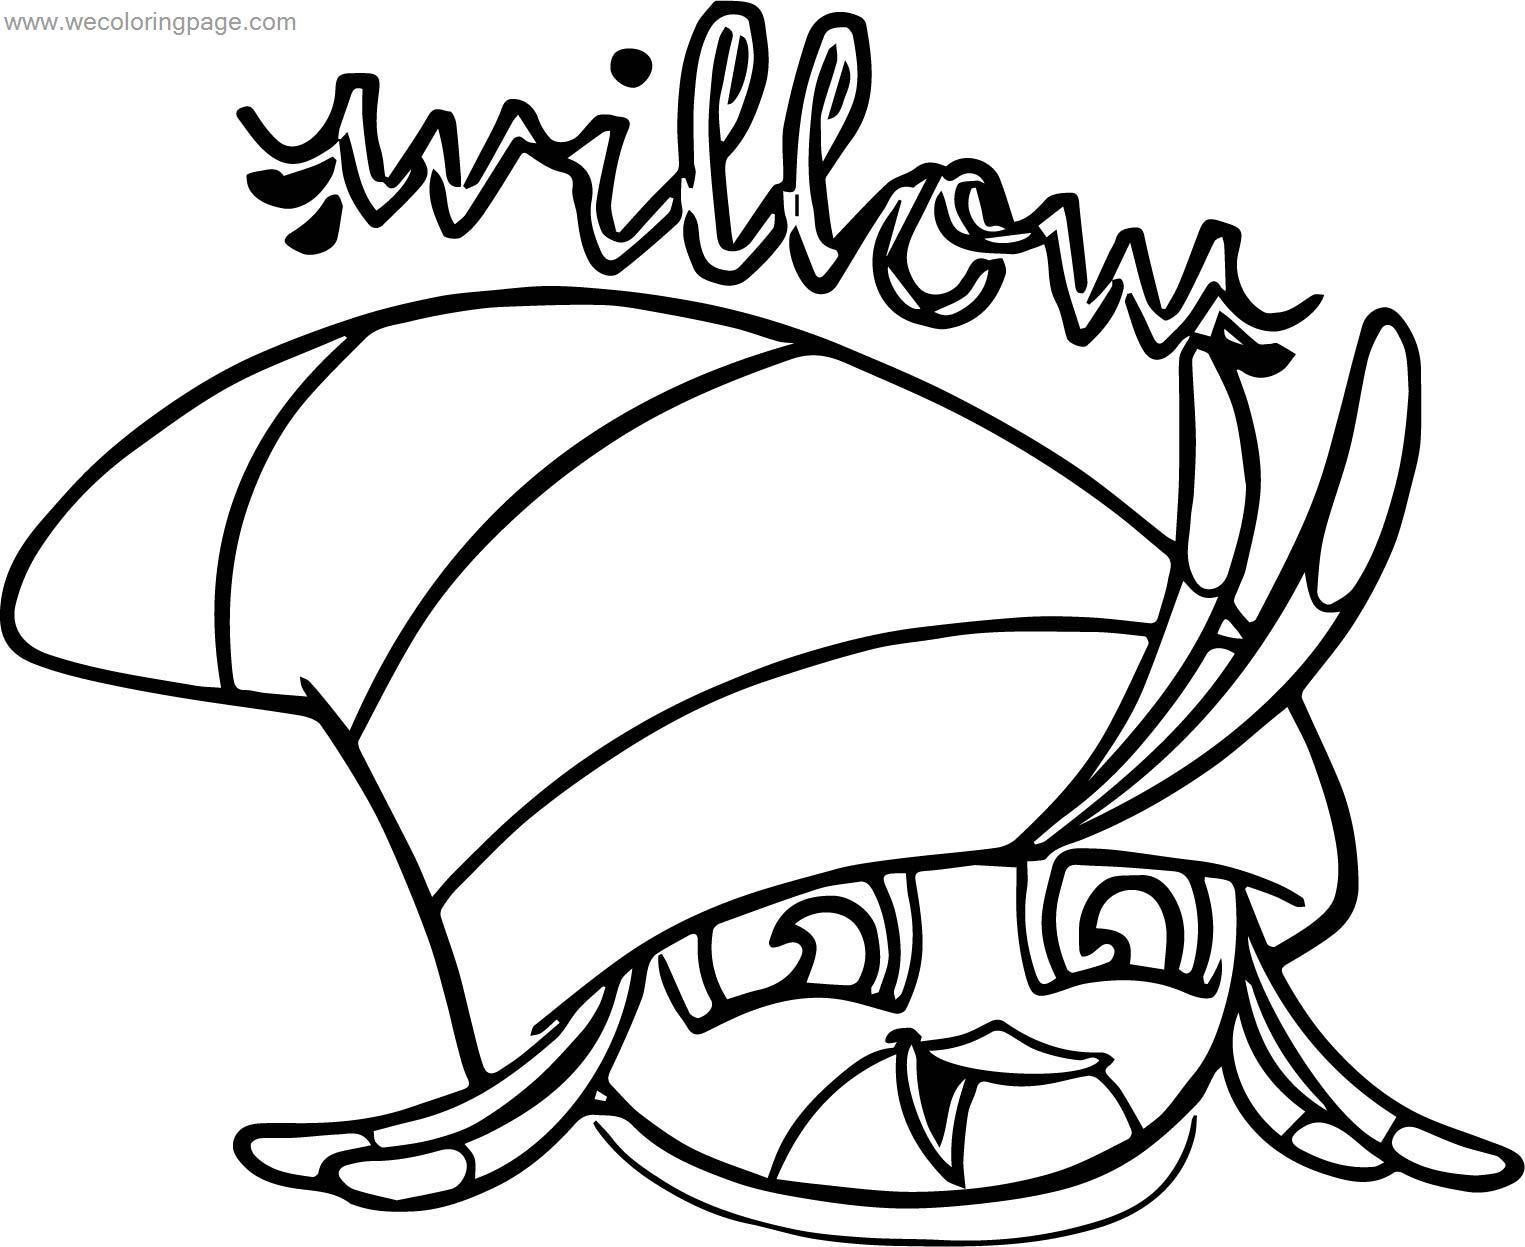 Angry Birds Stella Guide Birds Willow Wecoloringpage.com ...